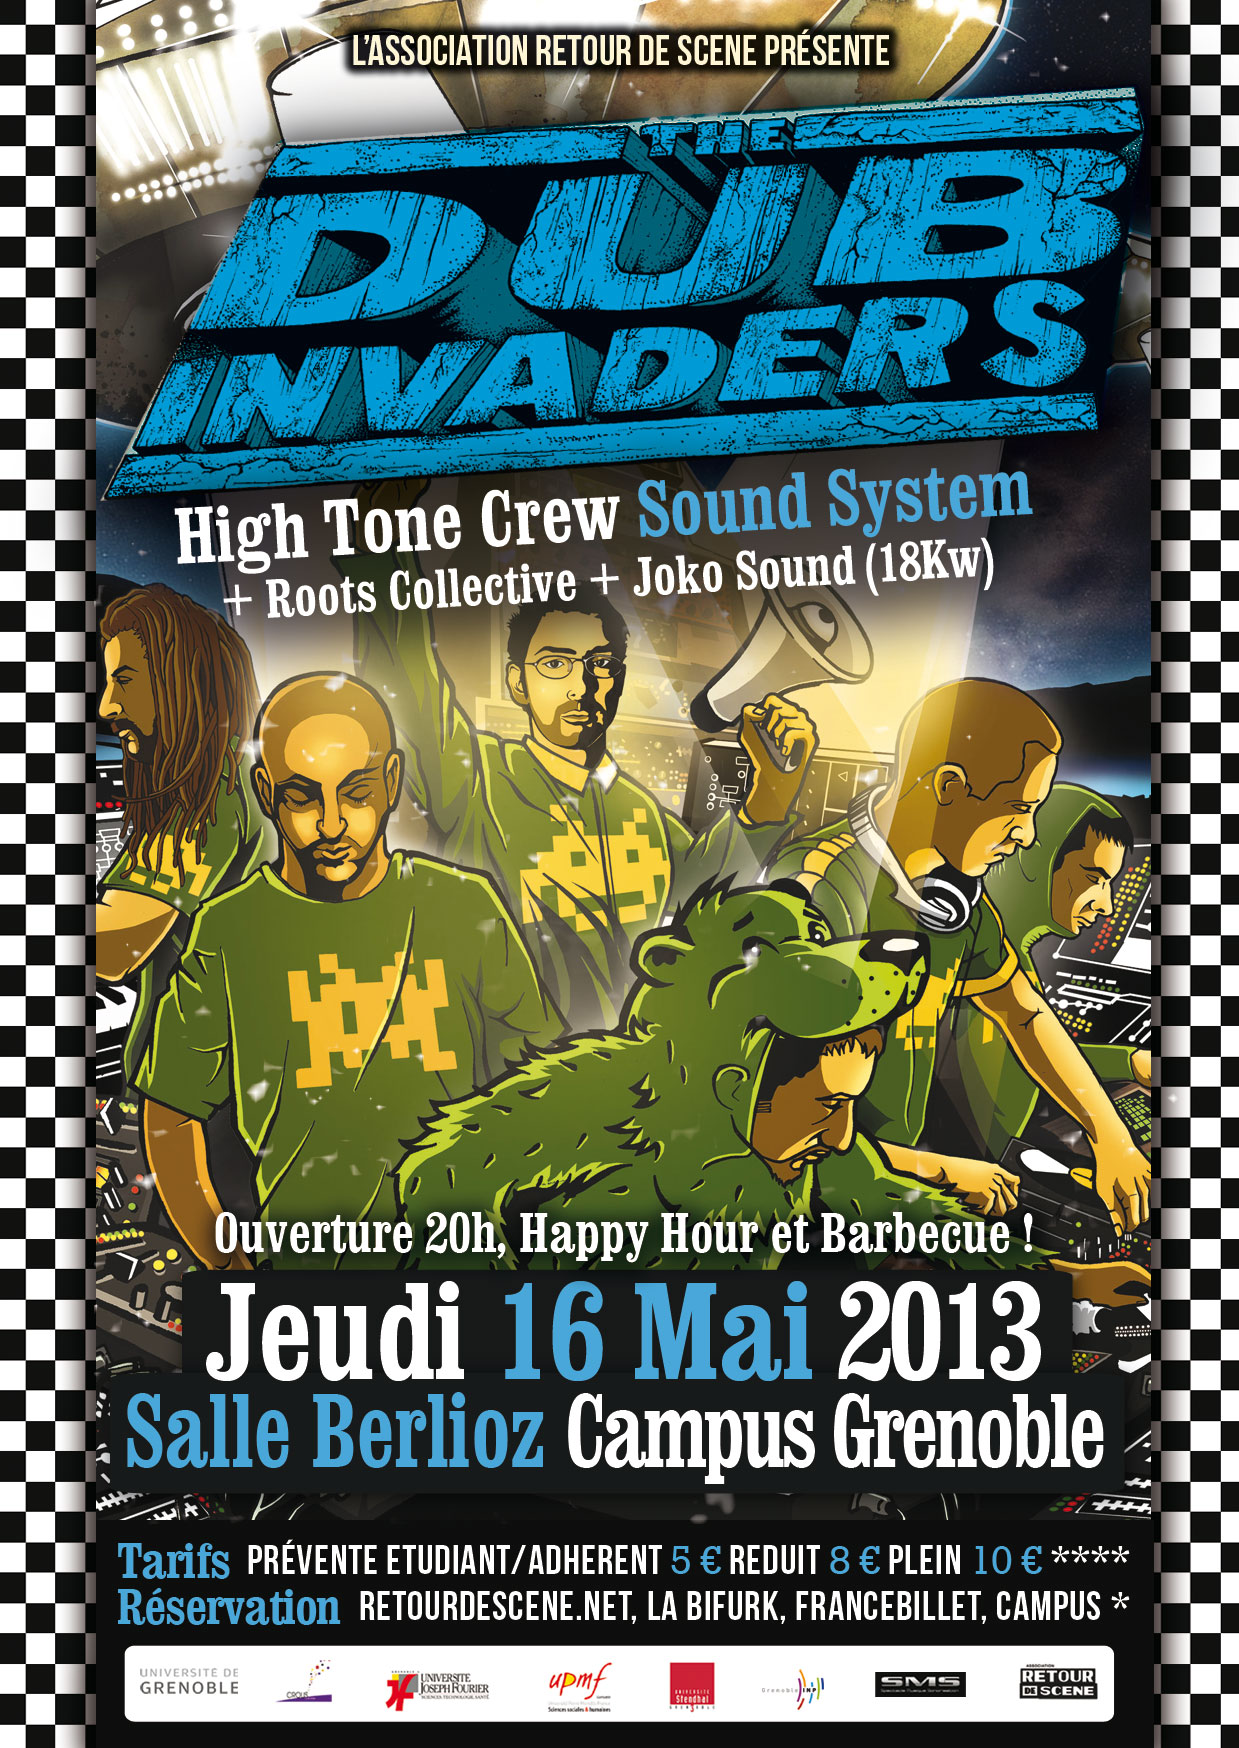 Dub Invaders - Berlioz Campus - 16/05/2013